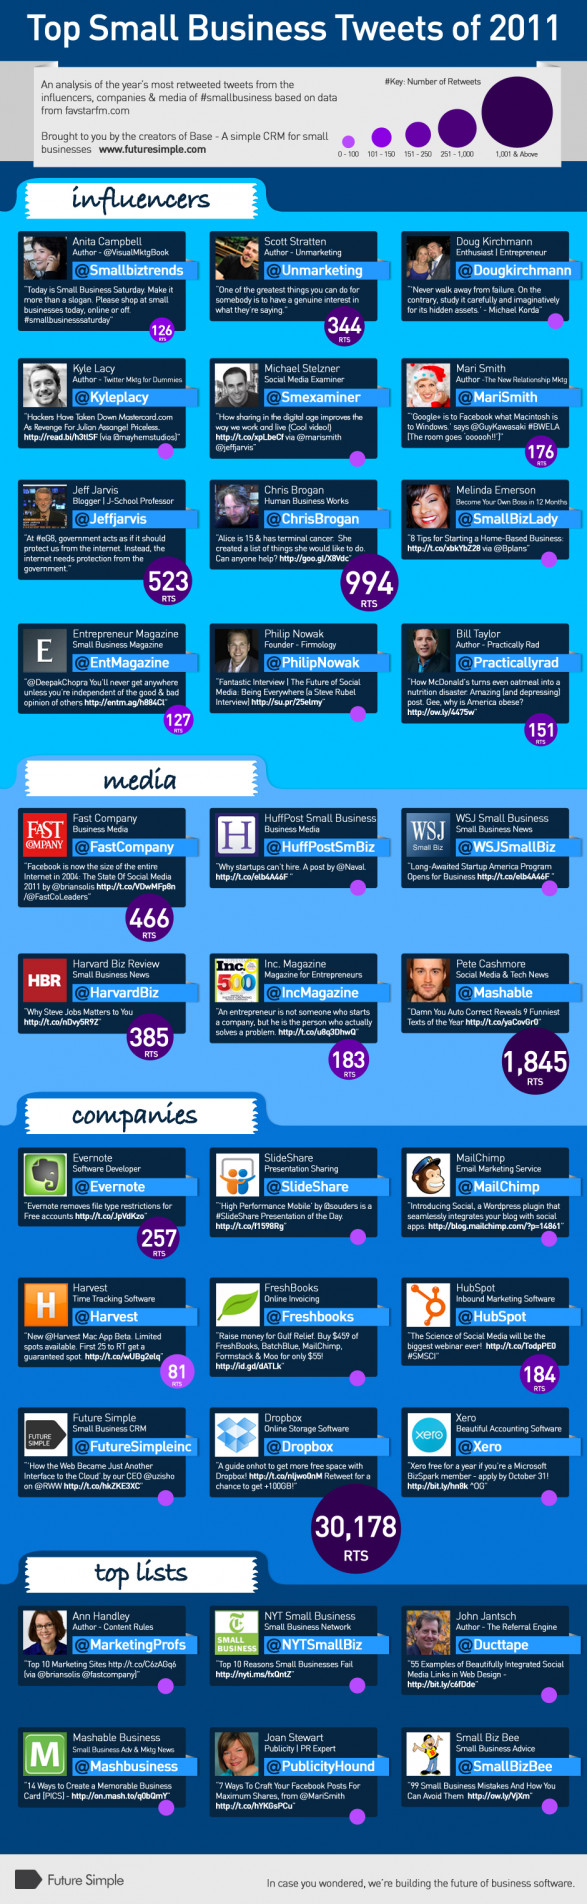 Top Small Business Tweets of 2011